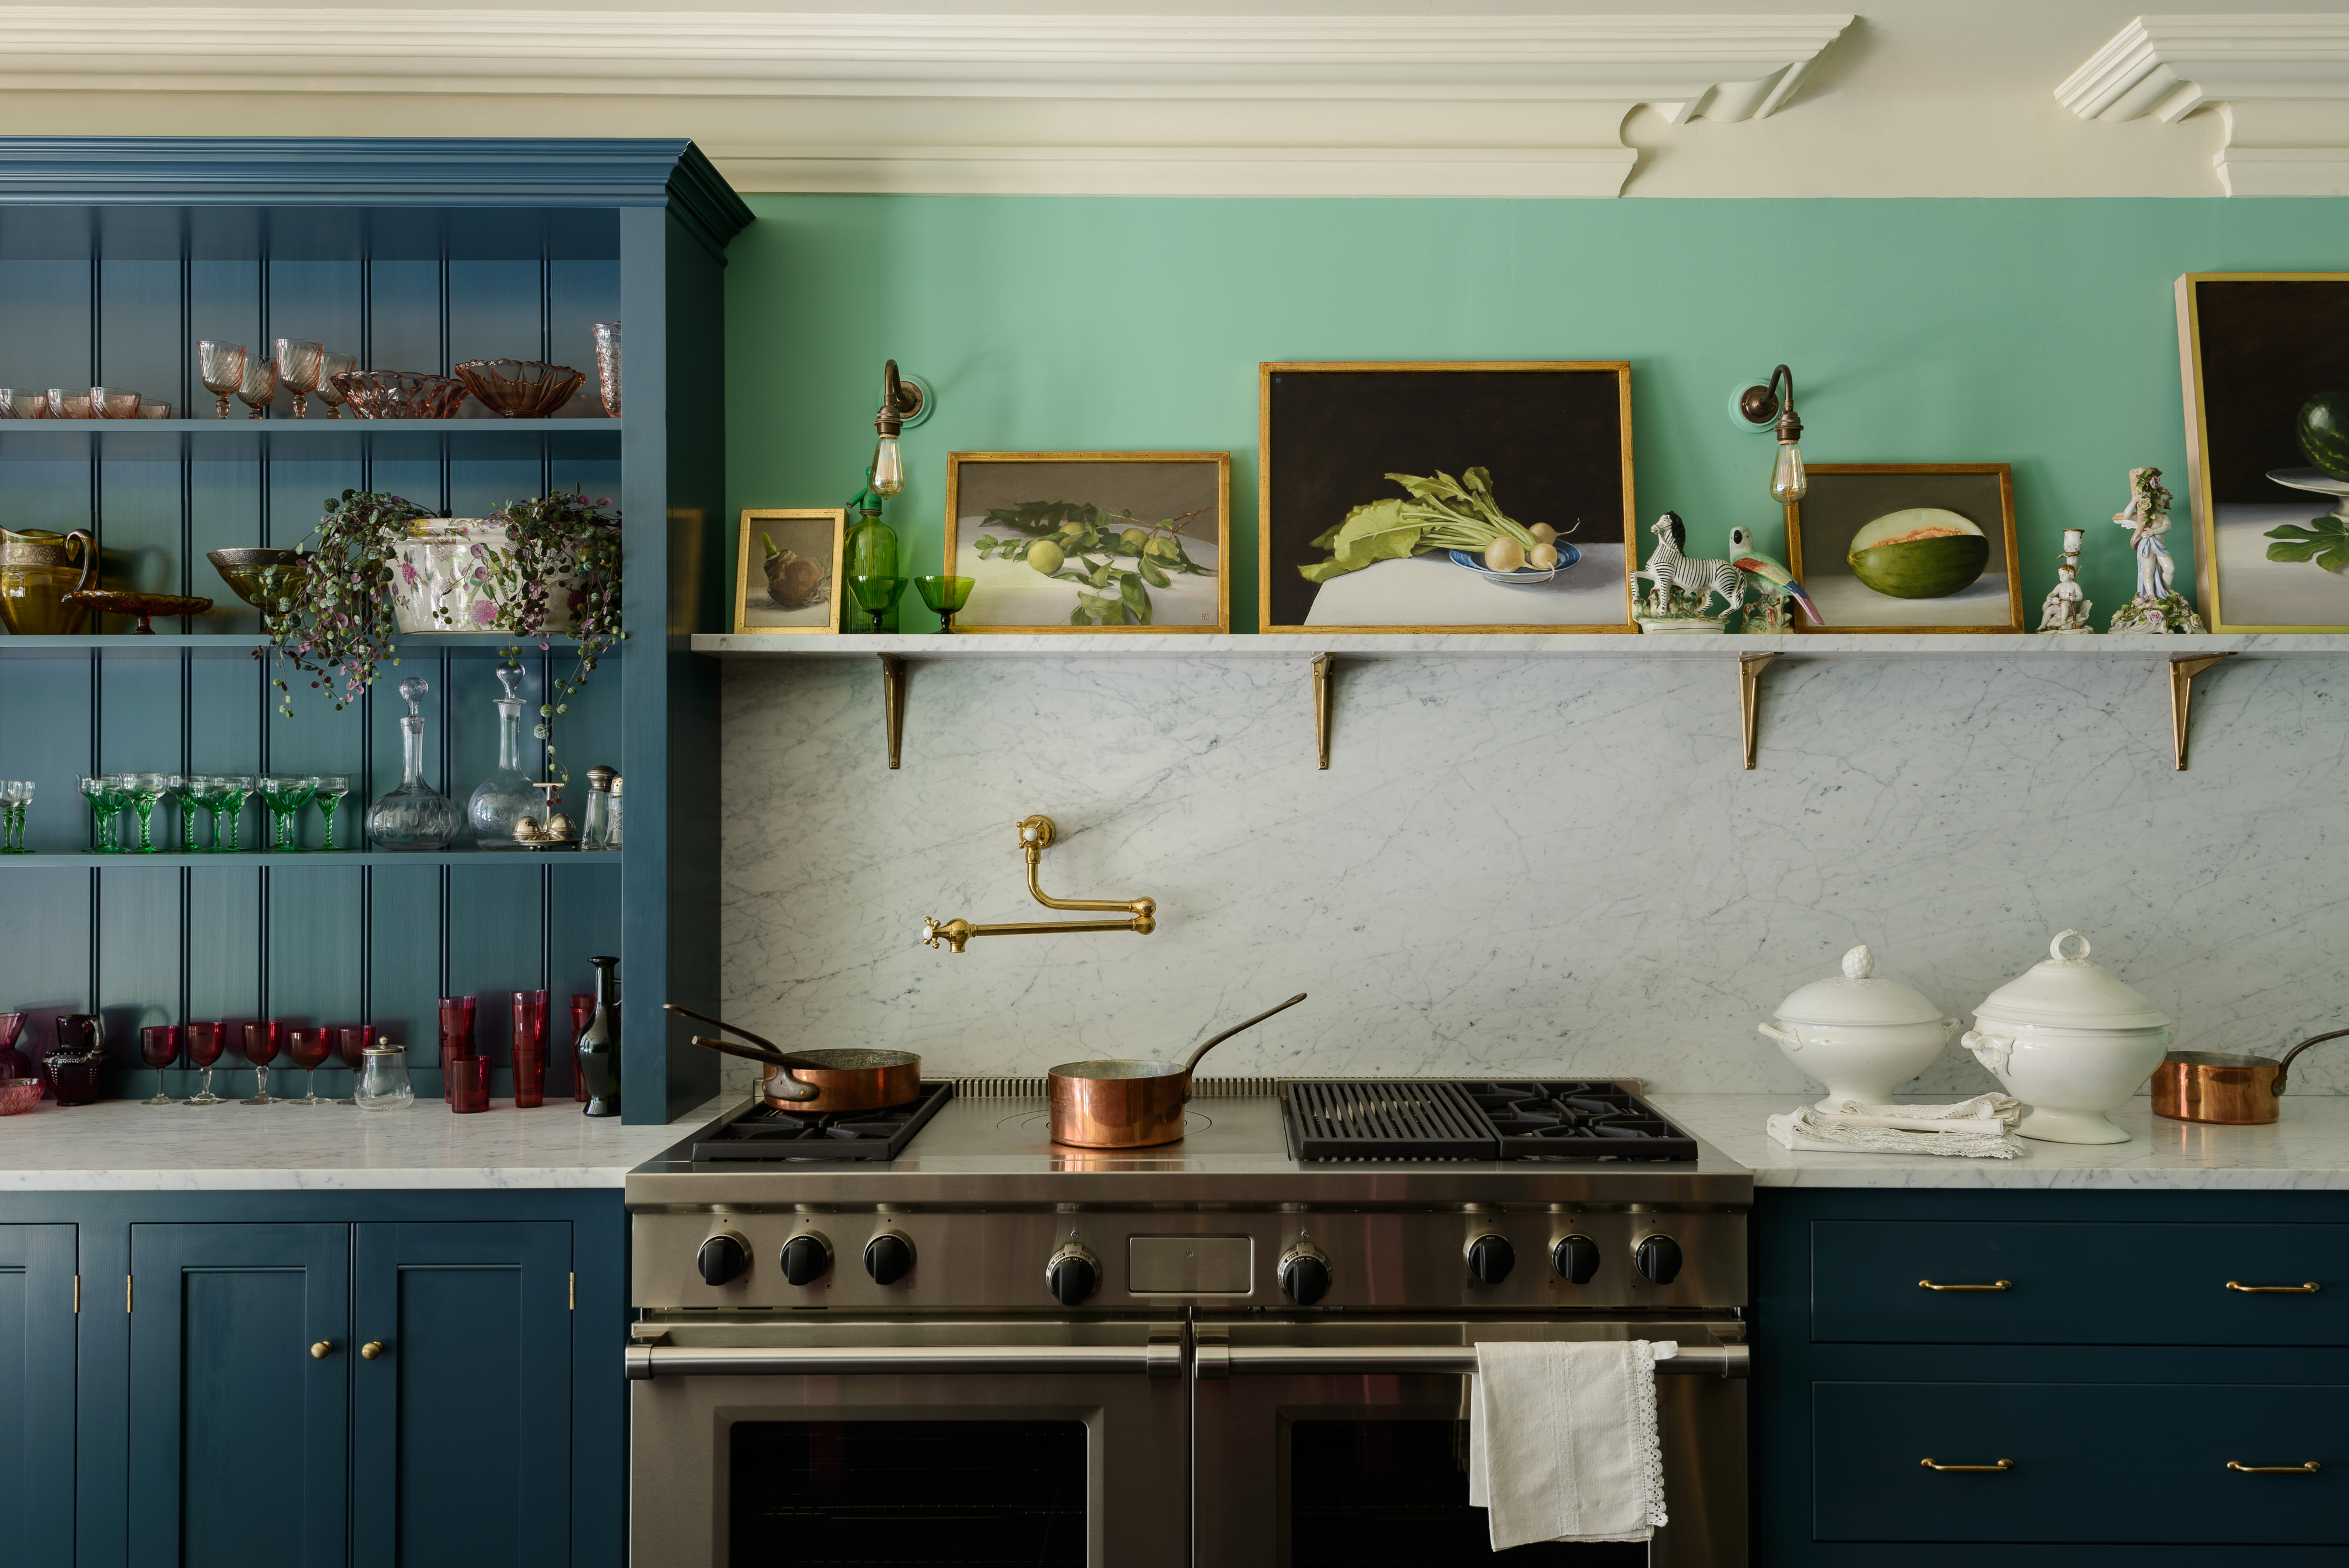 One-Step Makeover: How a new backsplash can dramatically transform the look of your kitchen